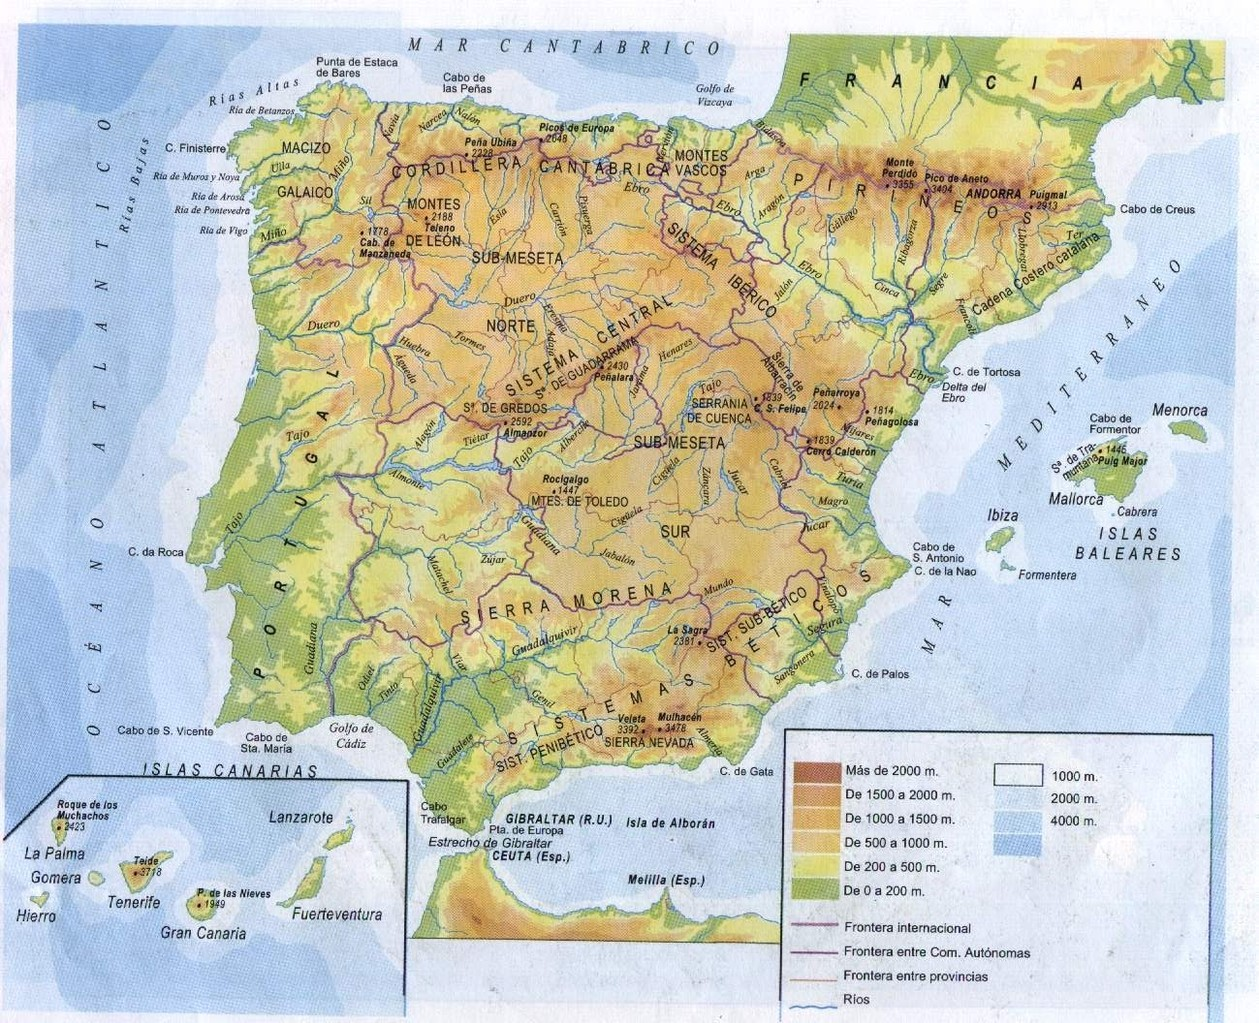 MAPA DEL RELIEVE PENINSULAR II